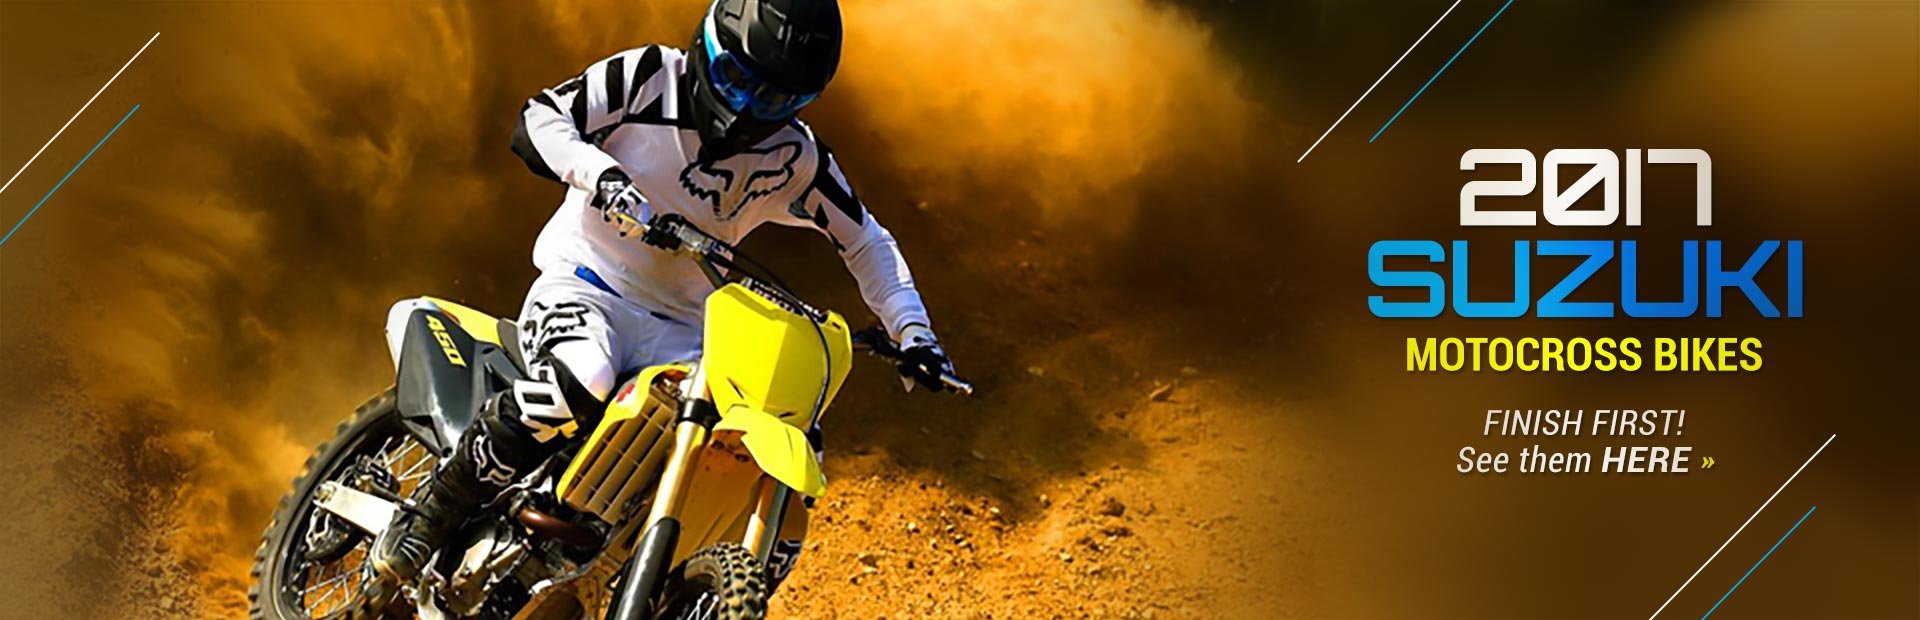 2017 Suzuki Motocross Bikes: Click here to view the models.